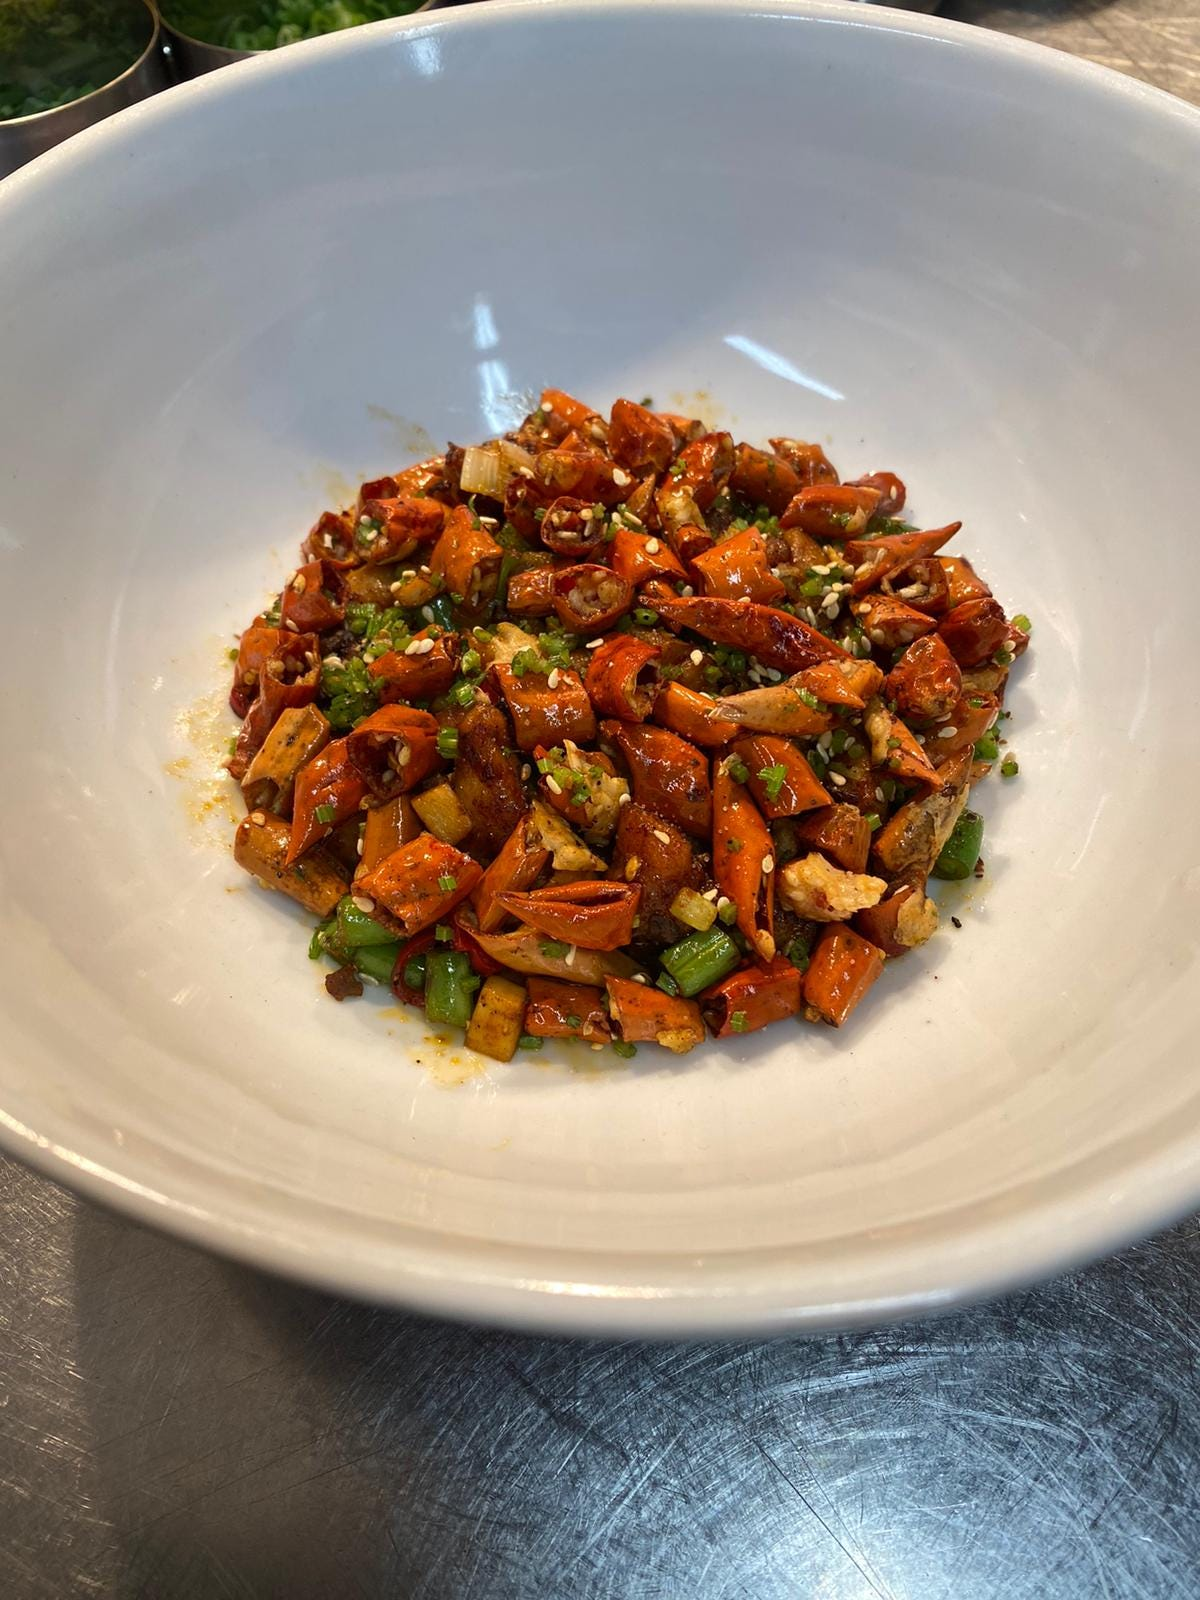 an overhead shot of a white dish on a stainless steel surface. In the dish is a pile of cooked red chillies, herbs, vegetables and chicken.